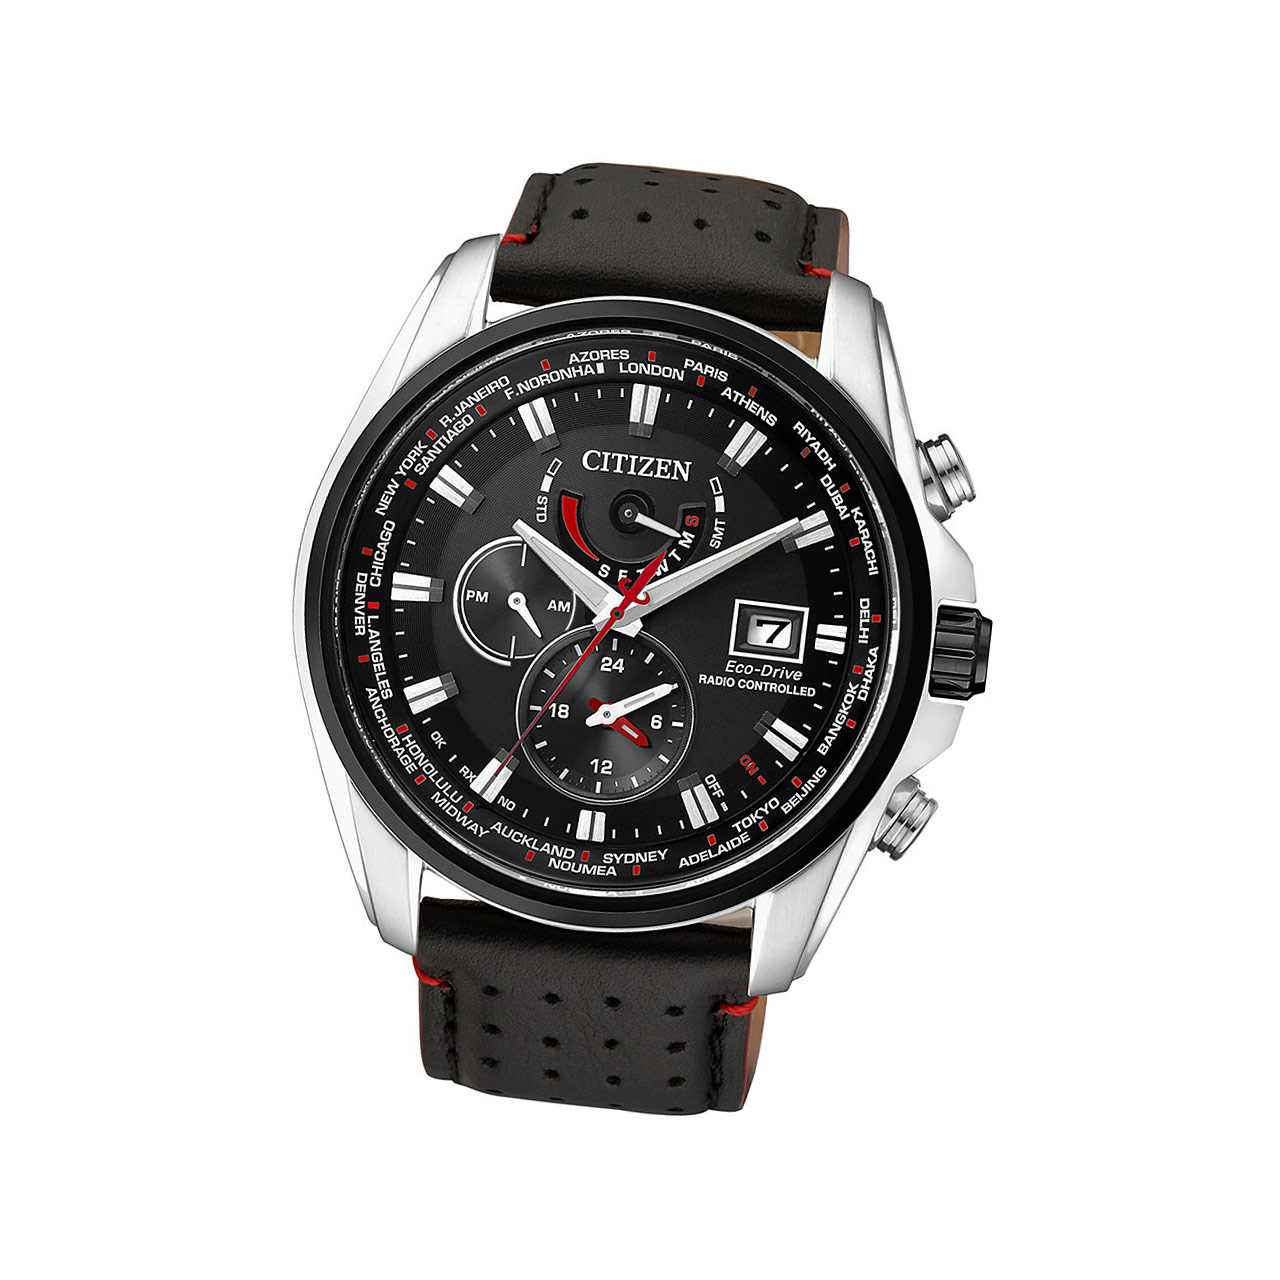 Citizen Elegant Herrenuhr AT9036-08E mit Saphirglas